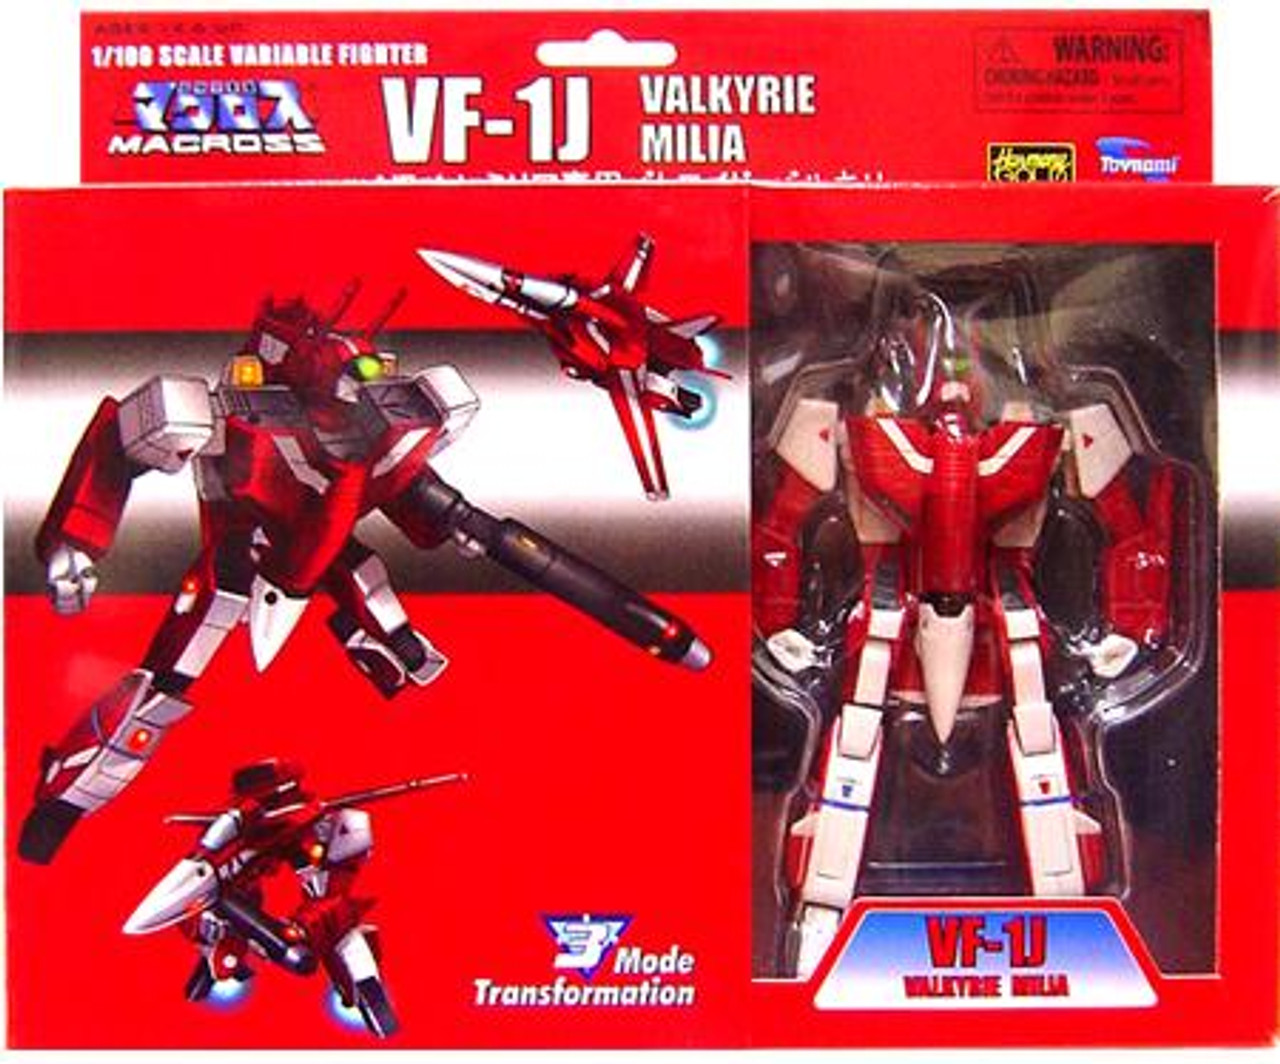 Macross Transformable Series 2 Veritech Milia's VF-1J Valkyrie Action Figure